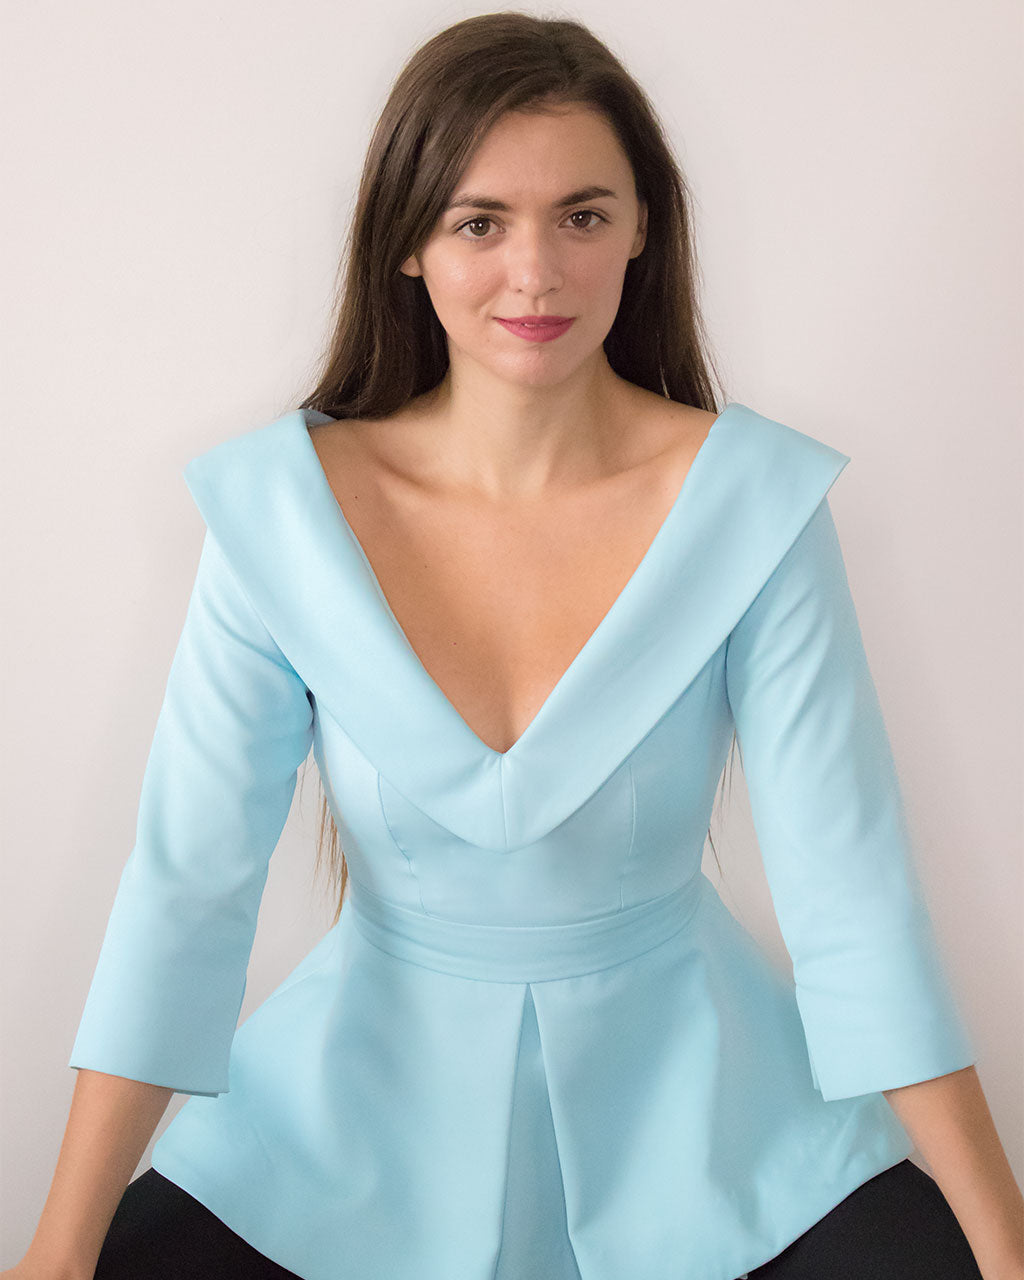 Pastel baby blue 3/4 sleeve lapel party top peplum off the shoulder Blouse by ADKN glamorous evening smart tops for weddings